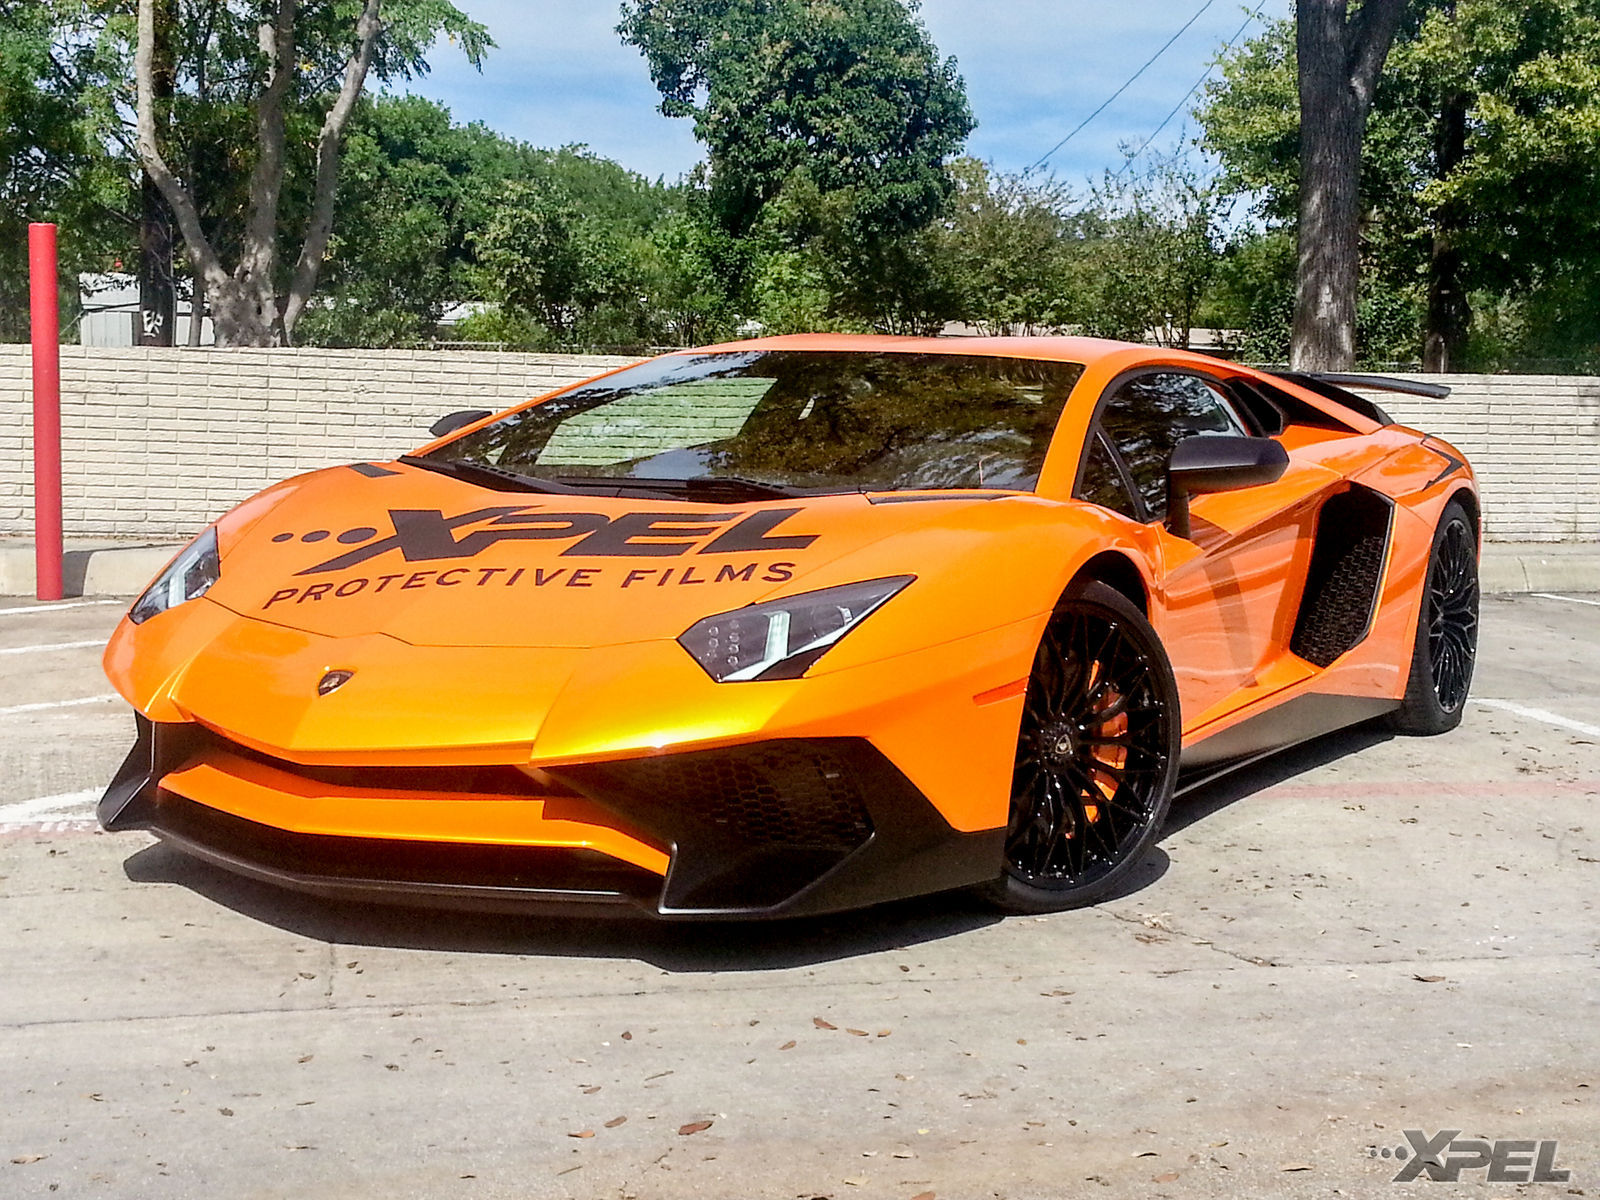 2016 Lamborghini Aventador | The beautiful Lamborghini Aventador SV wrapped in XPEL